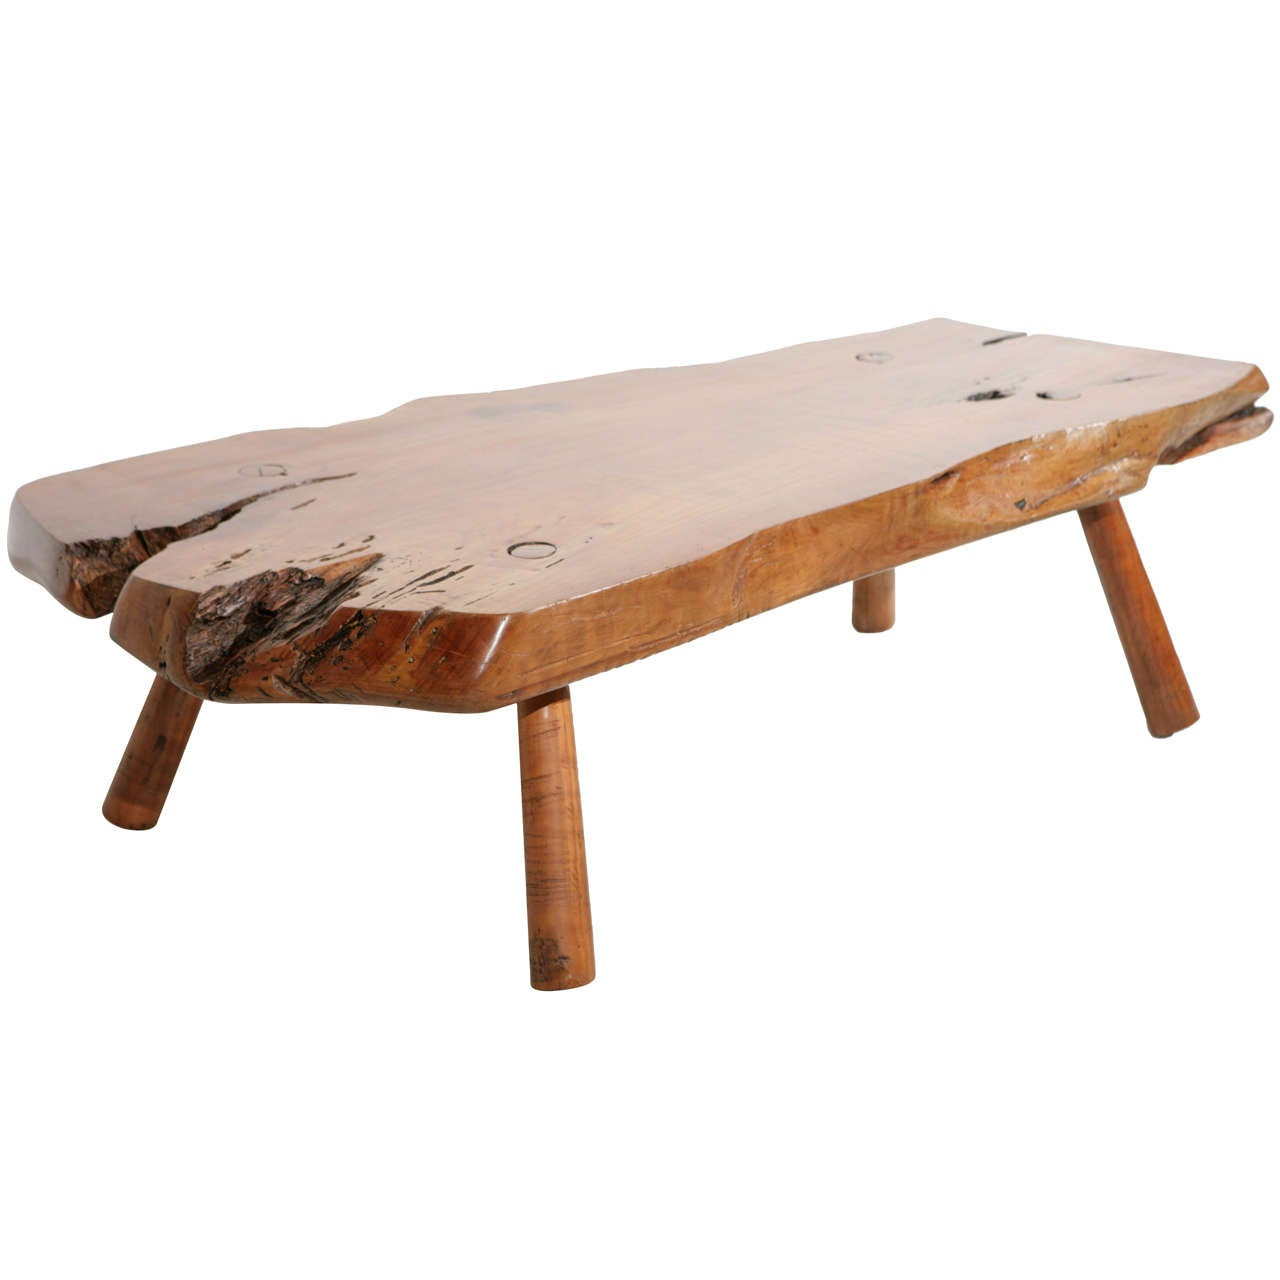 Vintage Burled Cypress Wood Live Edge Side Table At 1stdibs: Live Edge Redwood Coffee Table With Peg Legs At 1stdibs